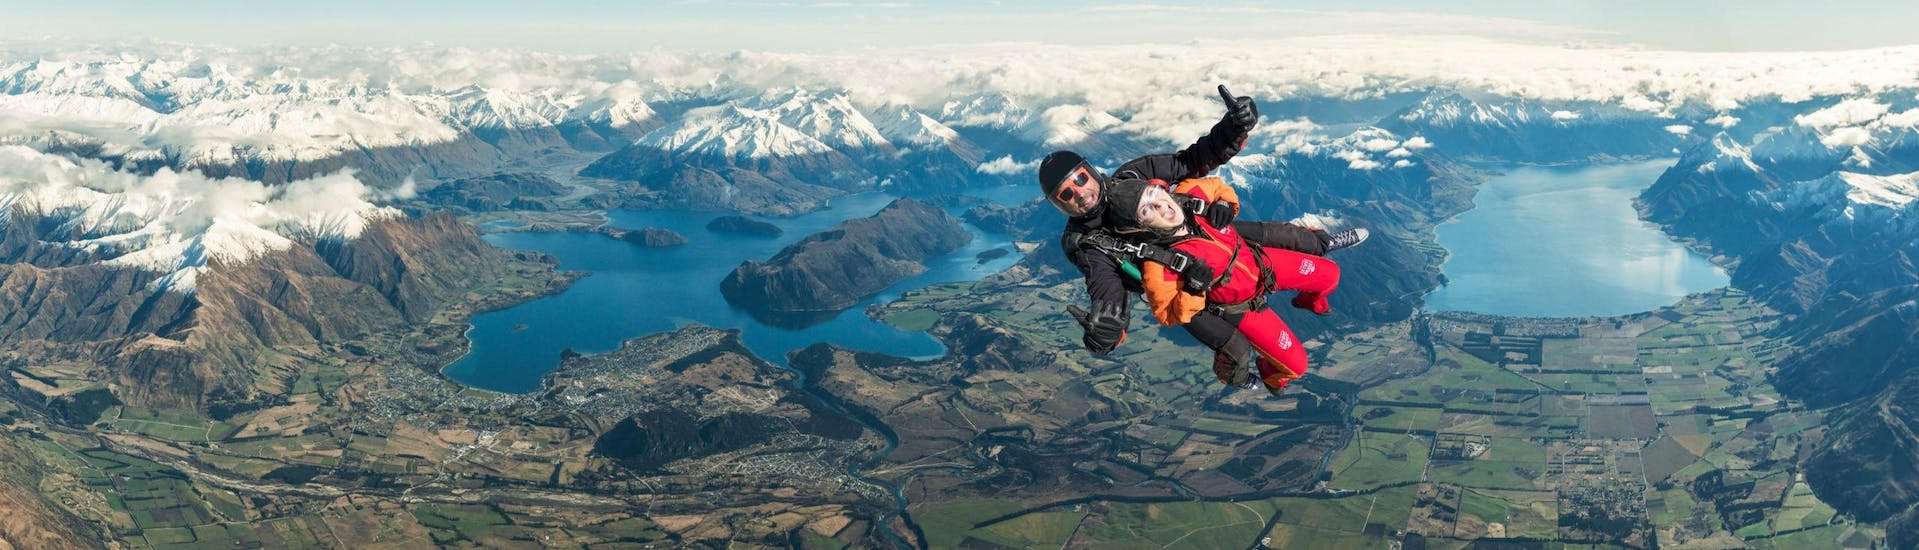 A tandem master from Skydive Wanaka and his passenger are in the middle of their Tandem Skydive in Wanaka - 15,000ft with Queenstown Transfer, above the spectacular mountainscape around Lake Wanaka.